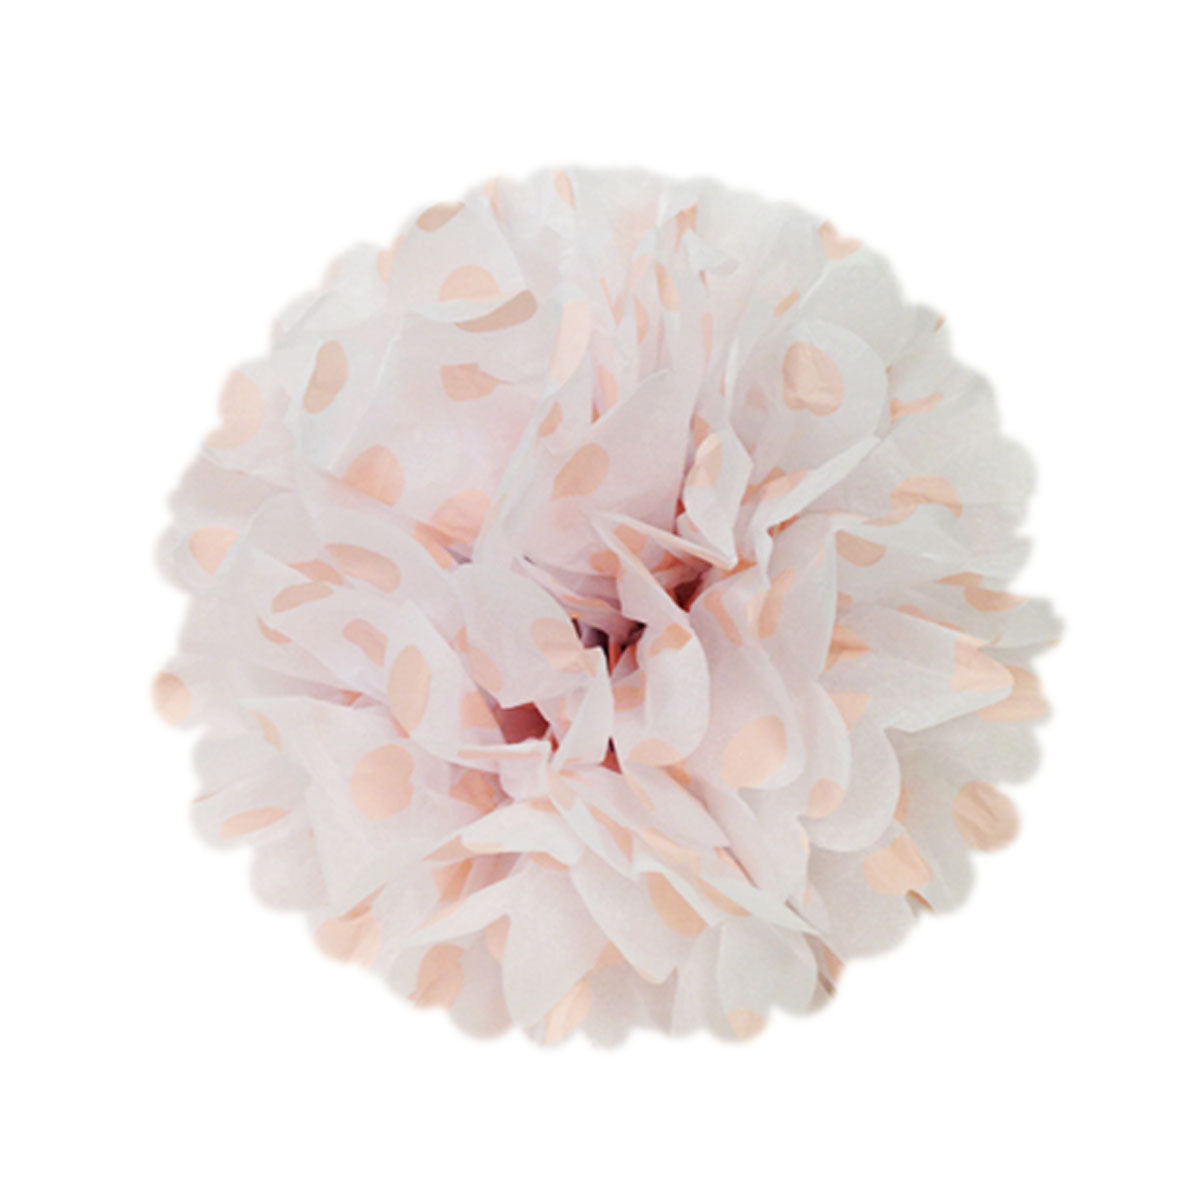 "Wrapables 12"" Set of 3 Tissue Pom Poms Party Decorations"